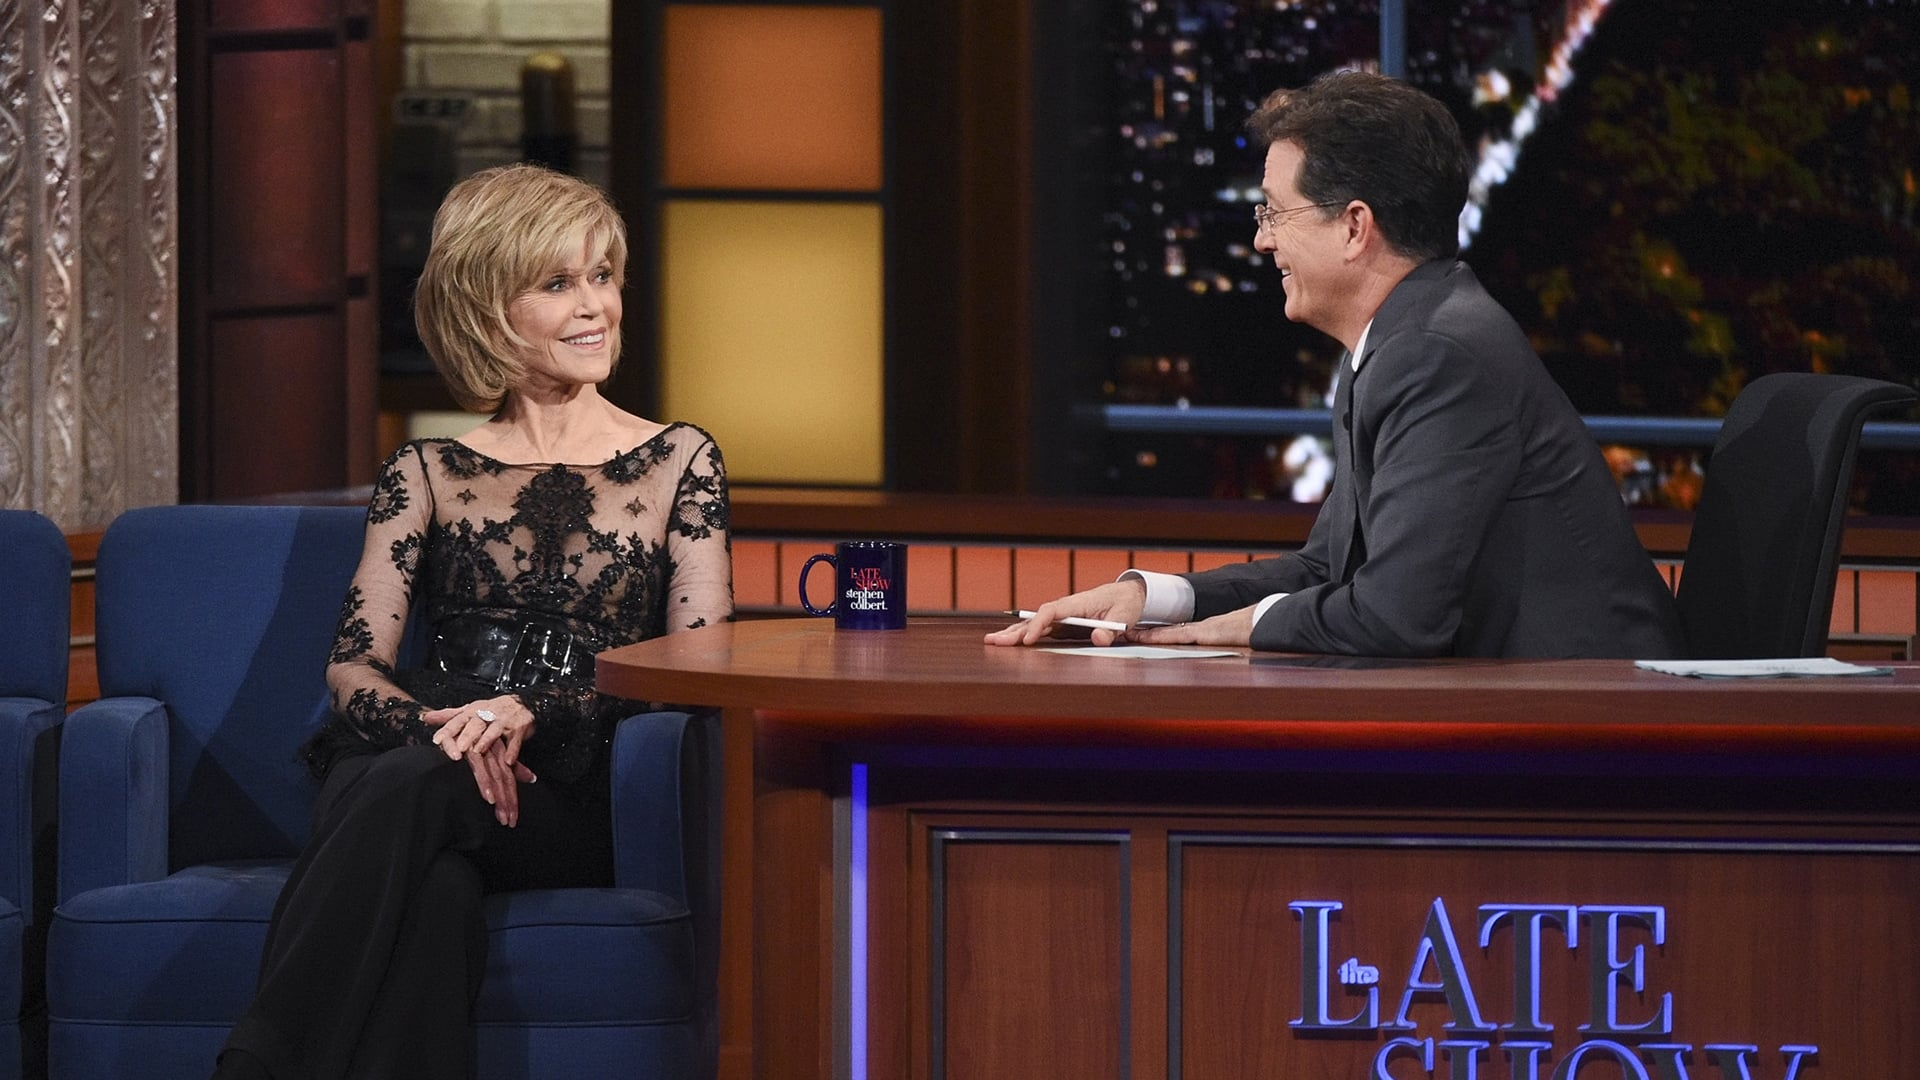 The Late Show with Stephen Colbert Season 1 :Episode 48  Jane Fonda, Andrew Lloyd Webber